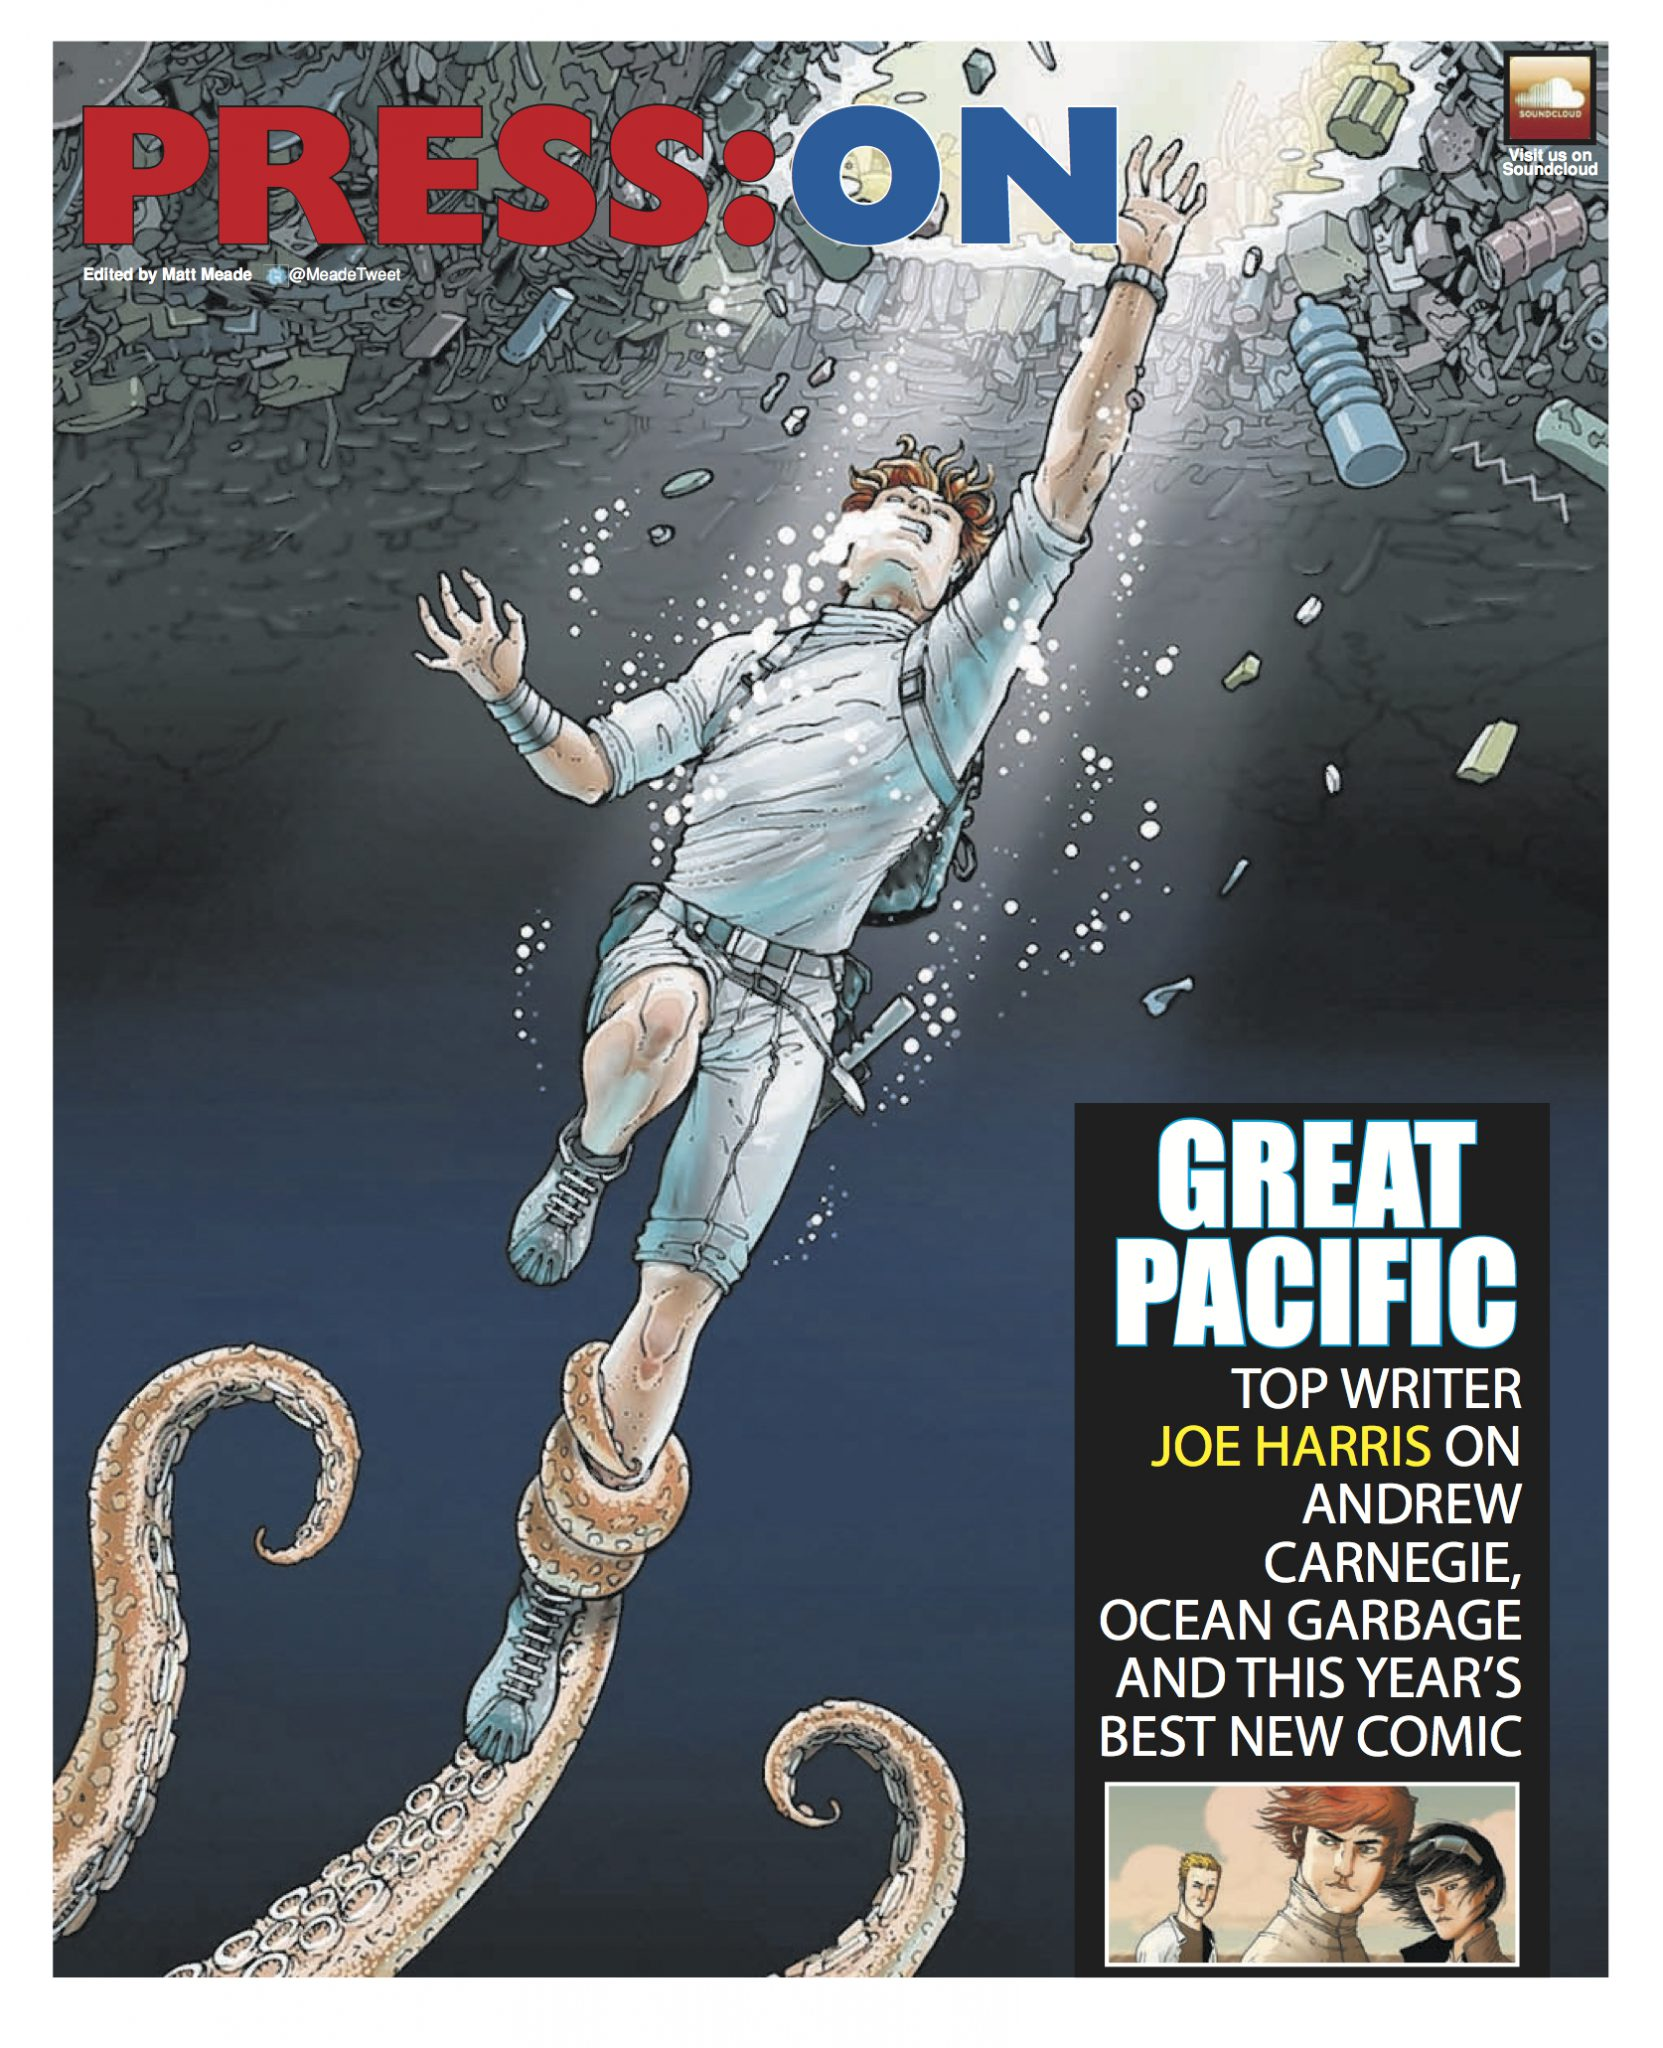 Feature article on Great Pacific, and interview with Joe Harris Page 1